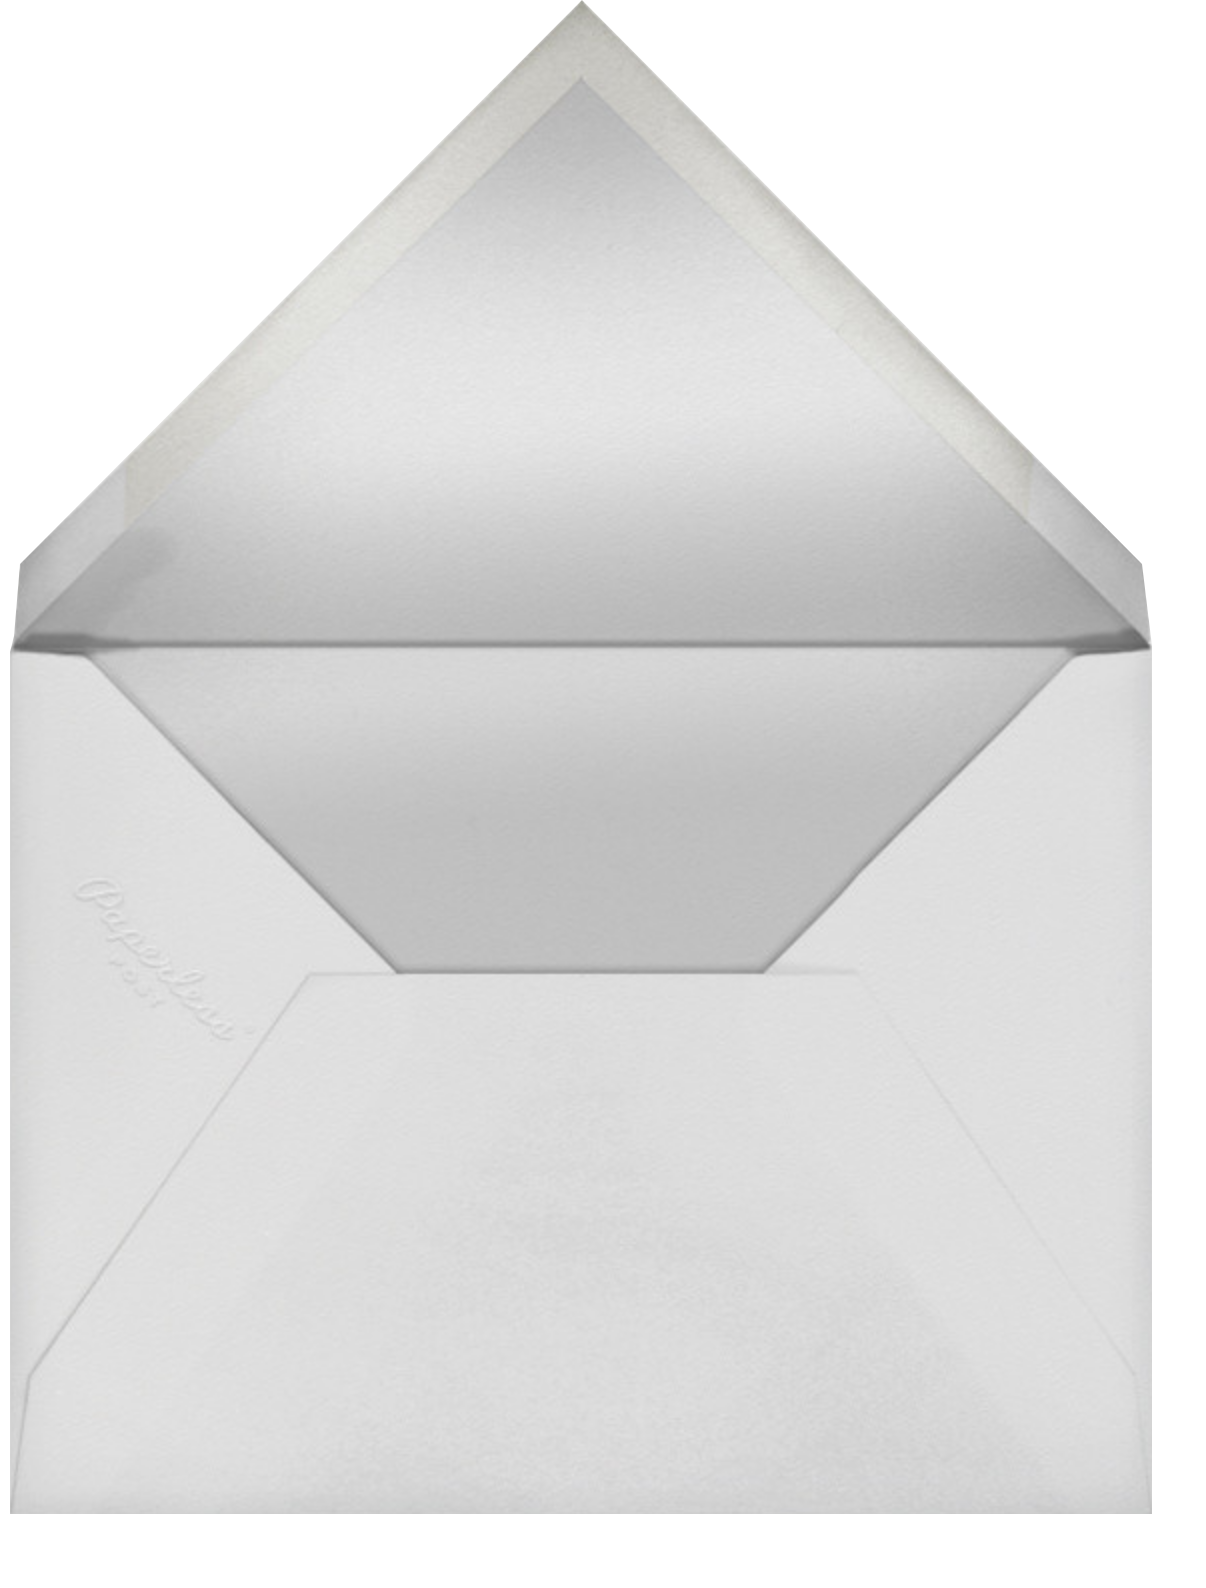 Star Showers - Silver - Paperless Post - Baby shower - envelope back